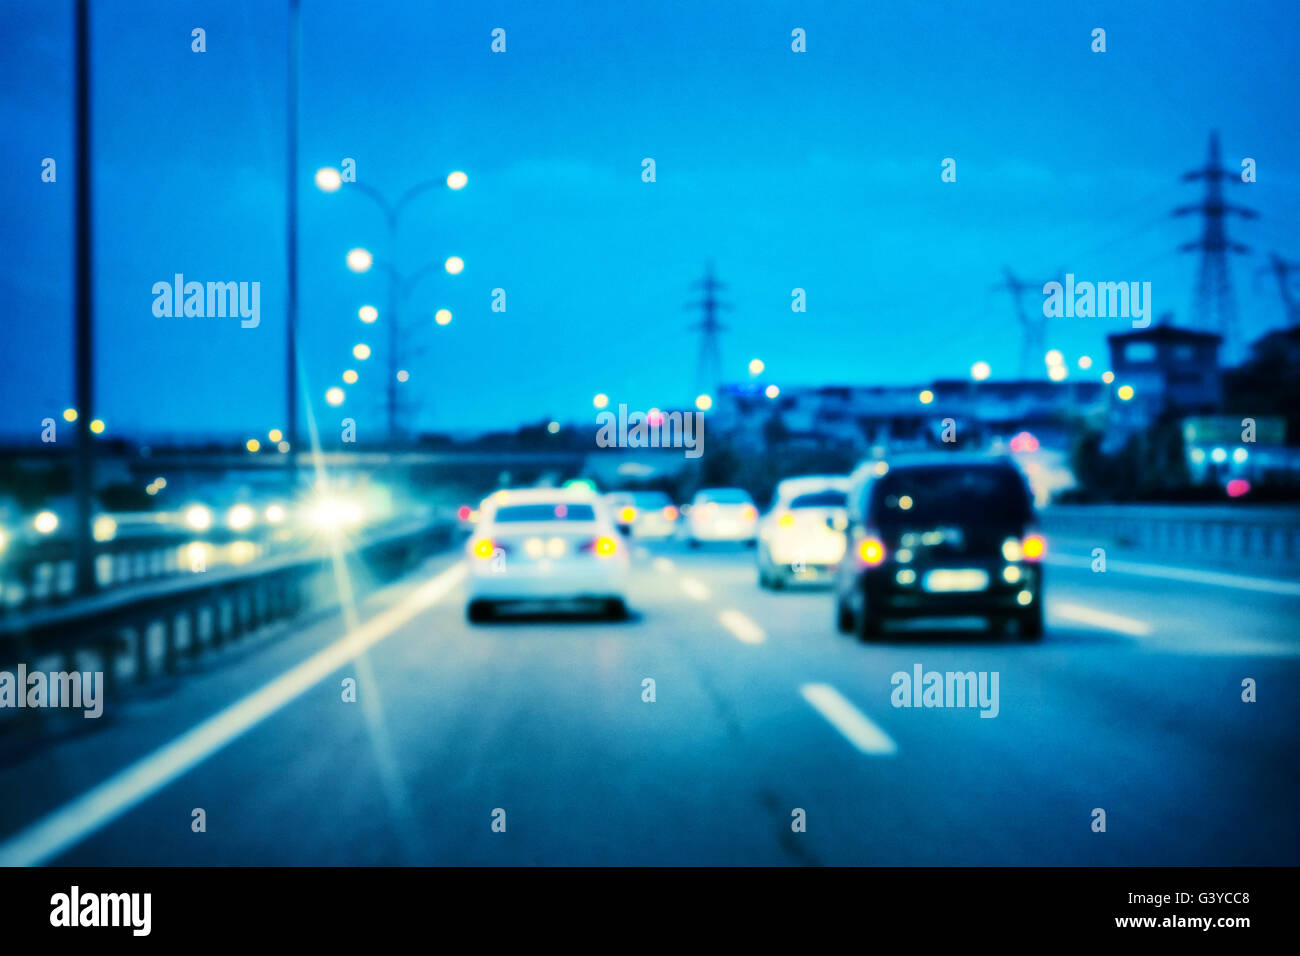 Illuminated the road car shot with blurred focus - Stock Image